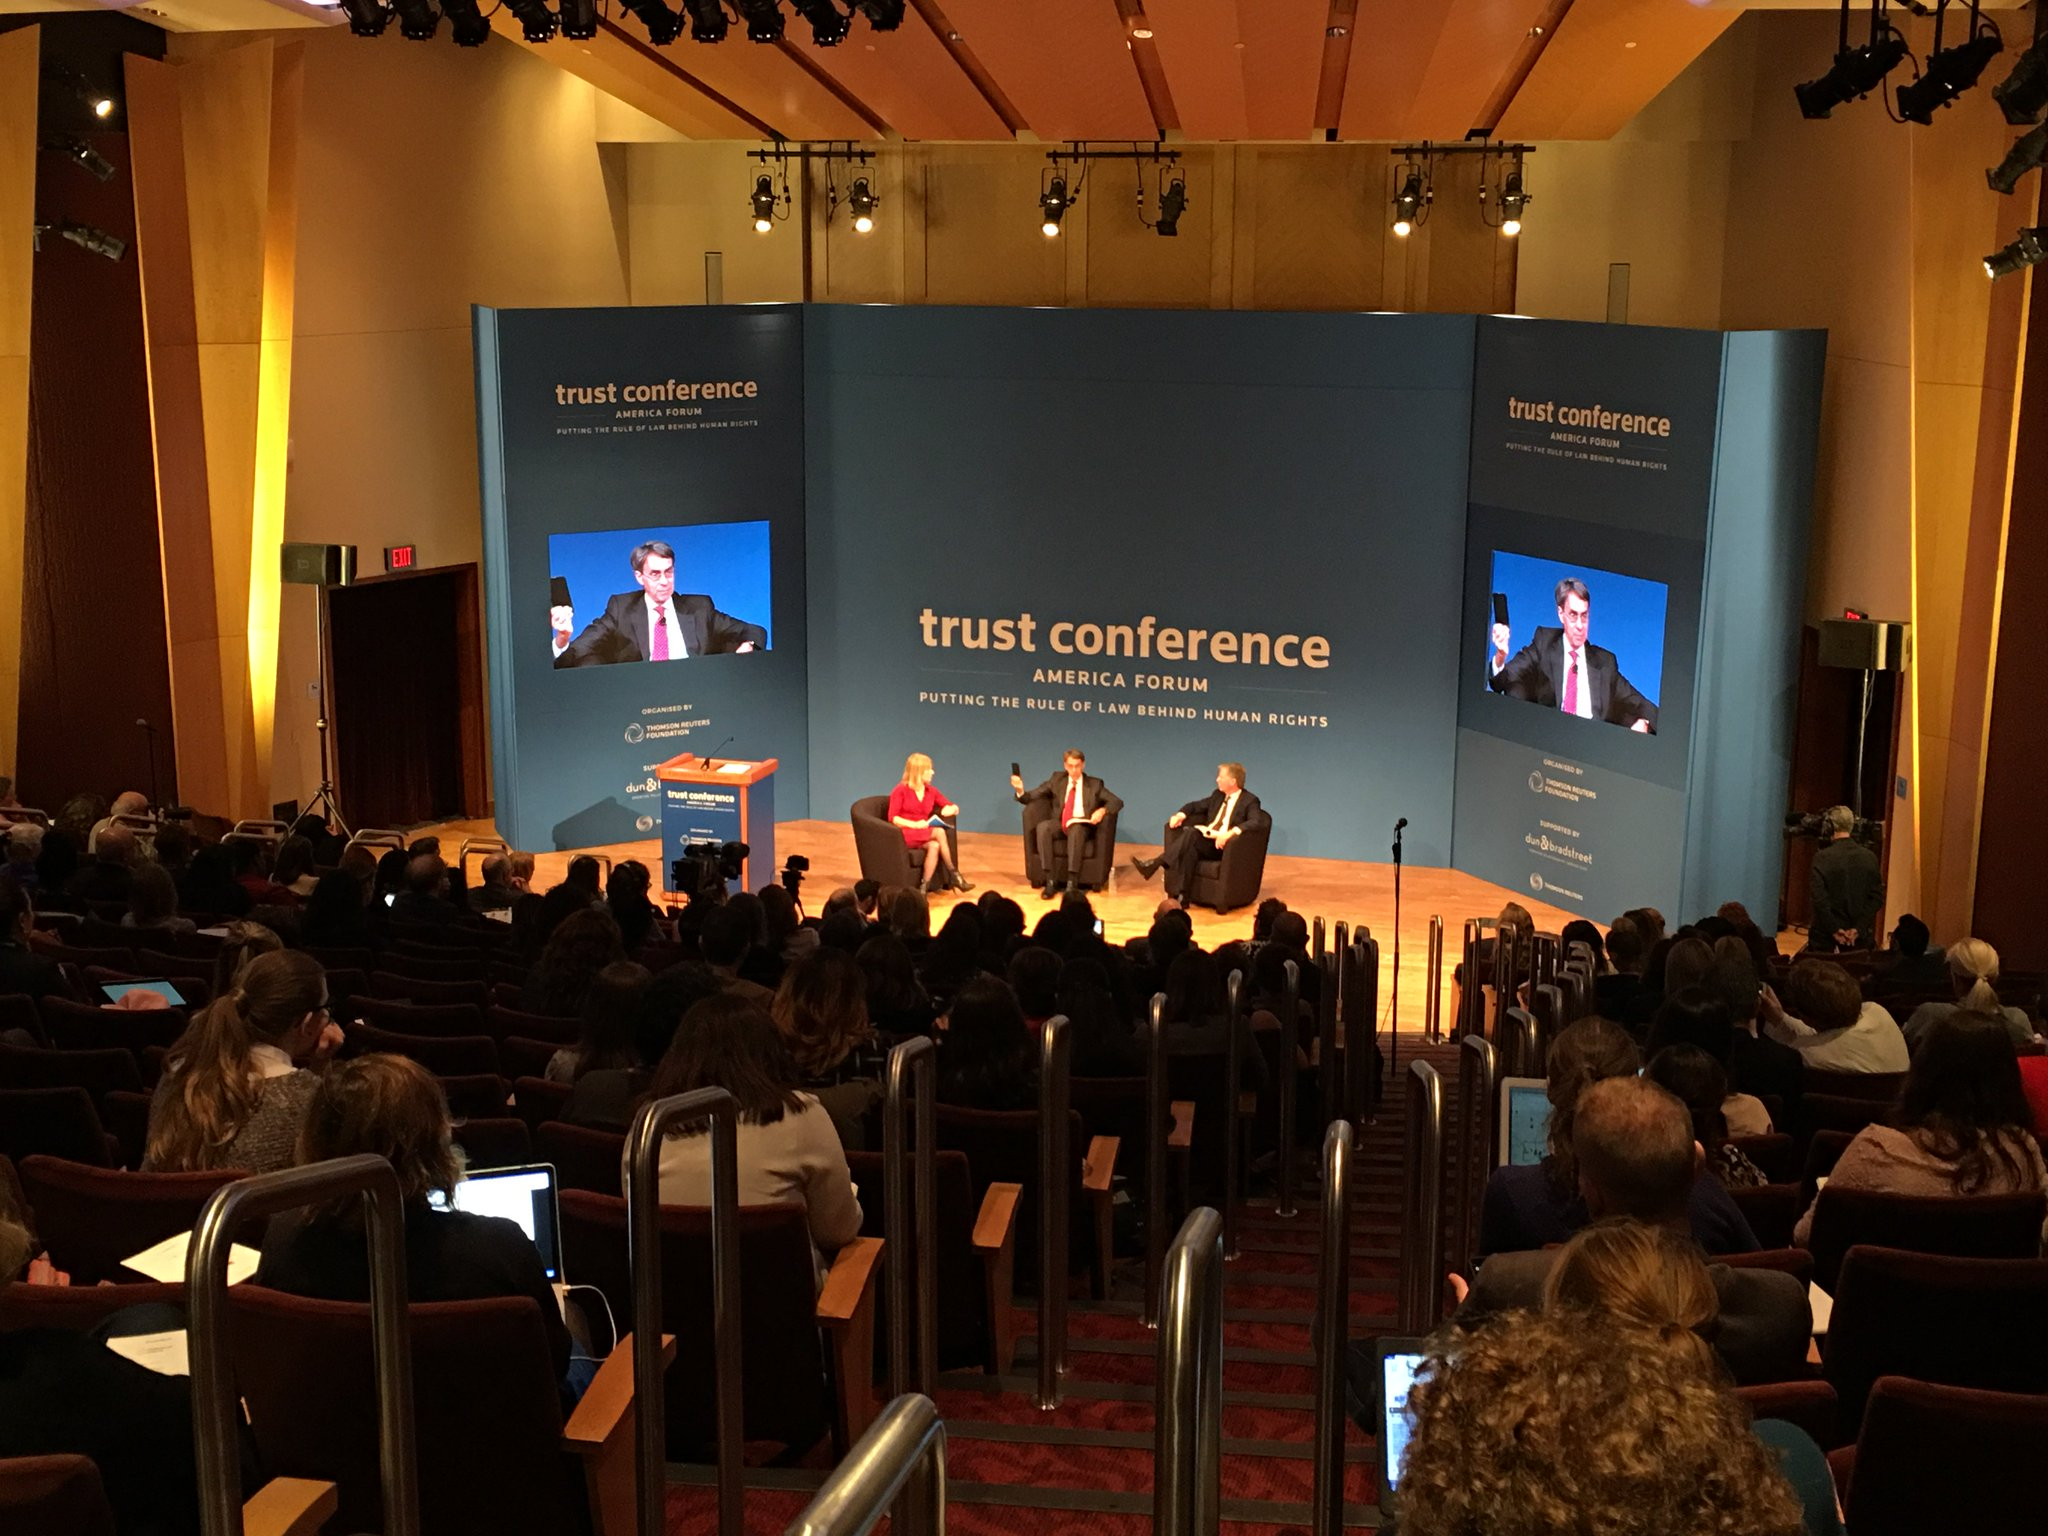 Full house today at @Georgetown for #trustconf2017. Tune in at https://t.co/afvmqmuDZt as we talk privacy, cyber security and human rights. https://t.co/UHJw4x6Xdl